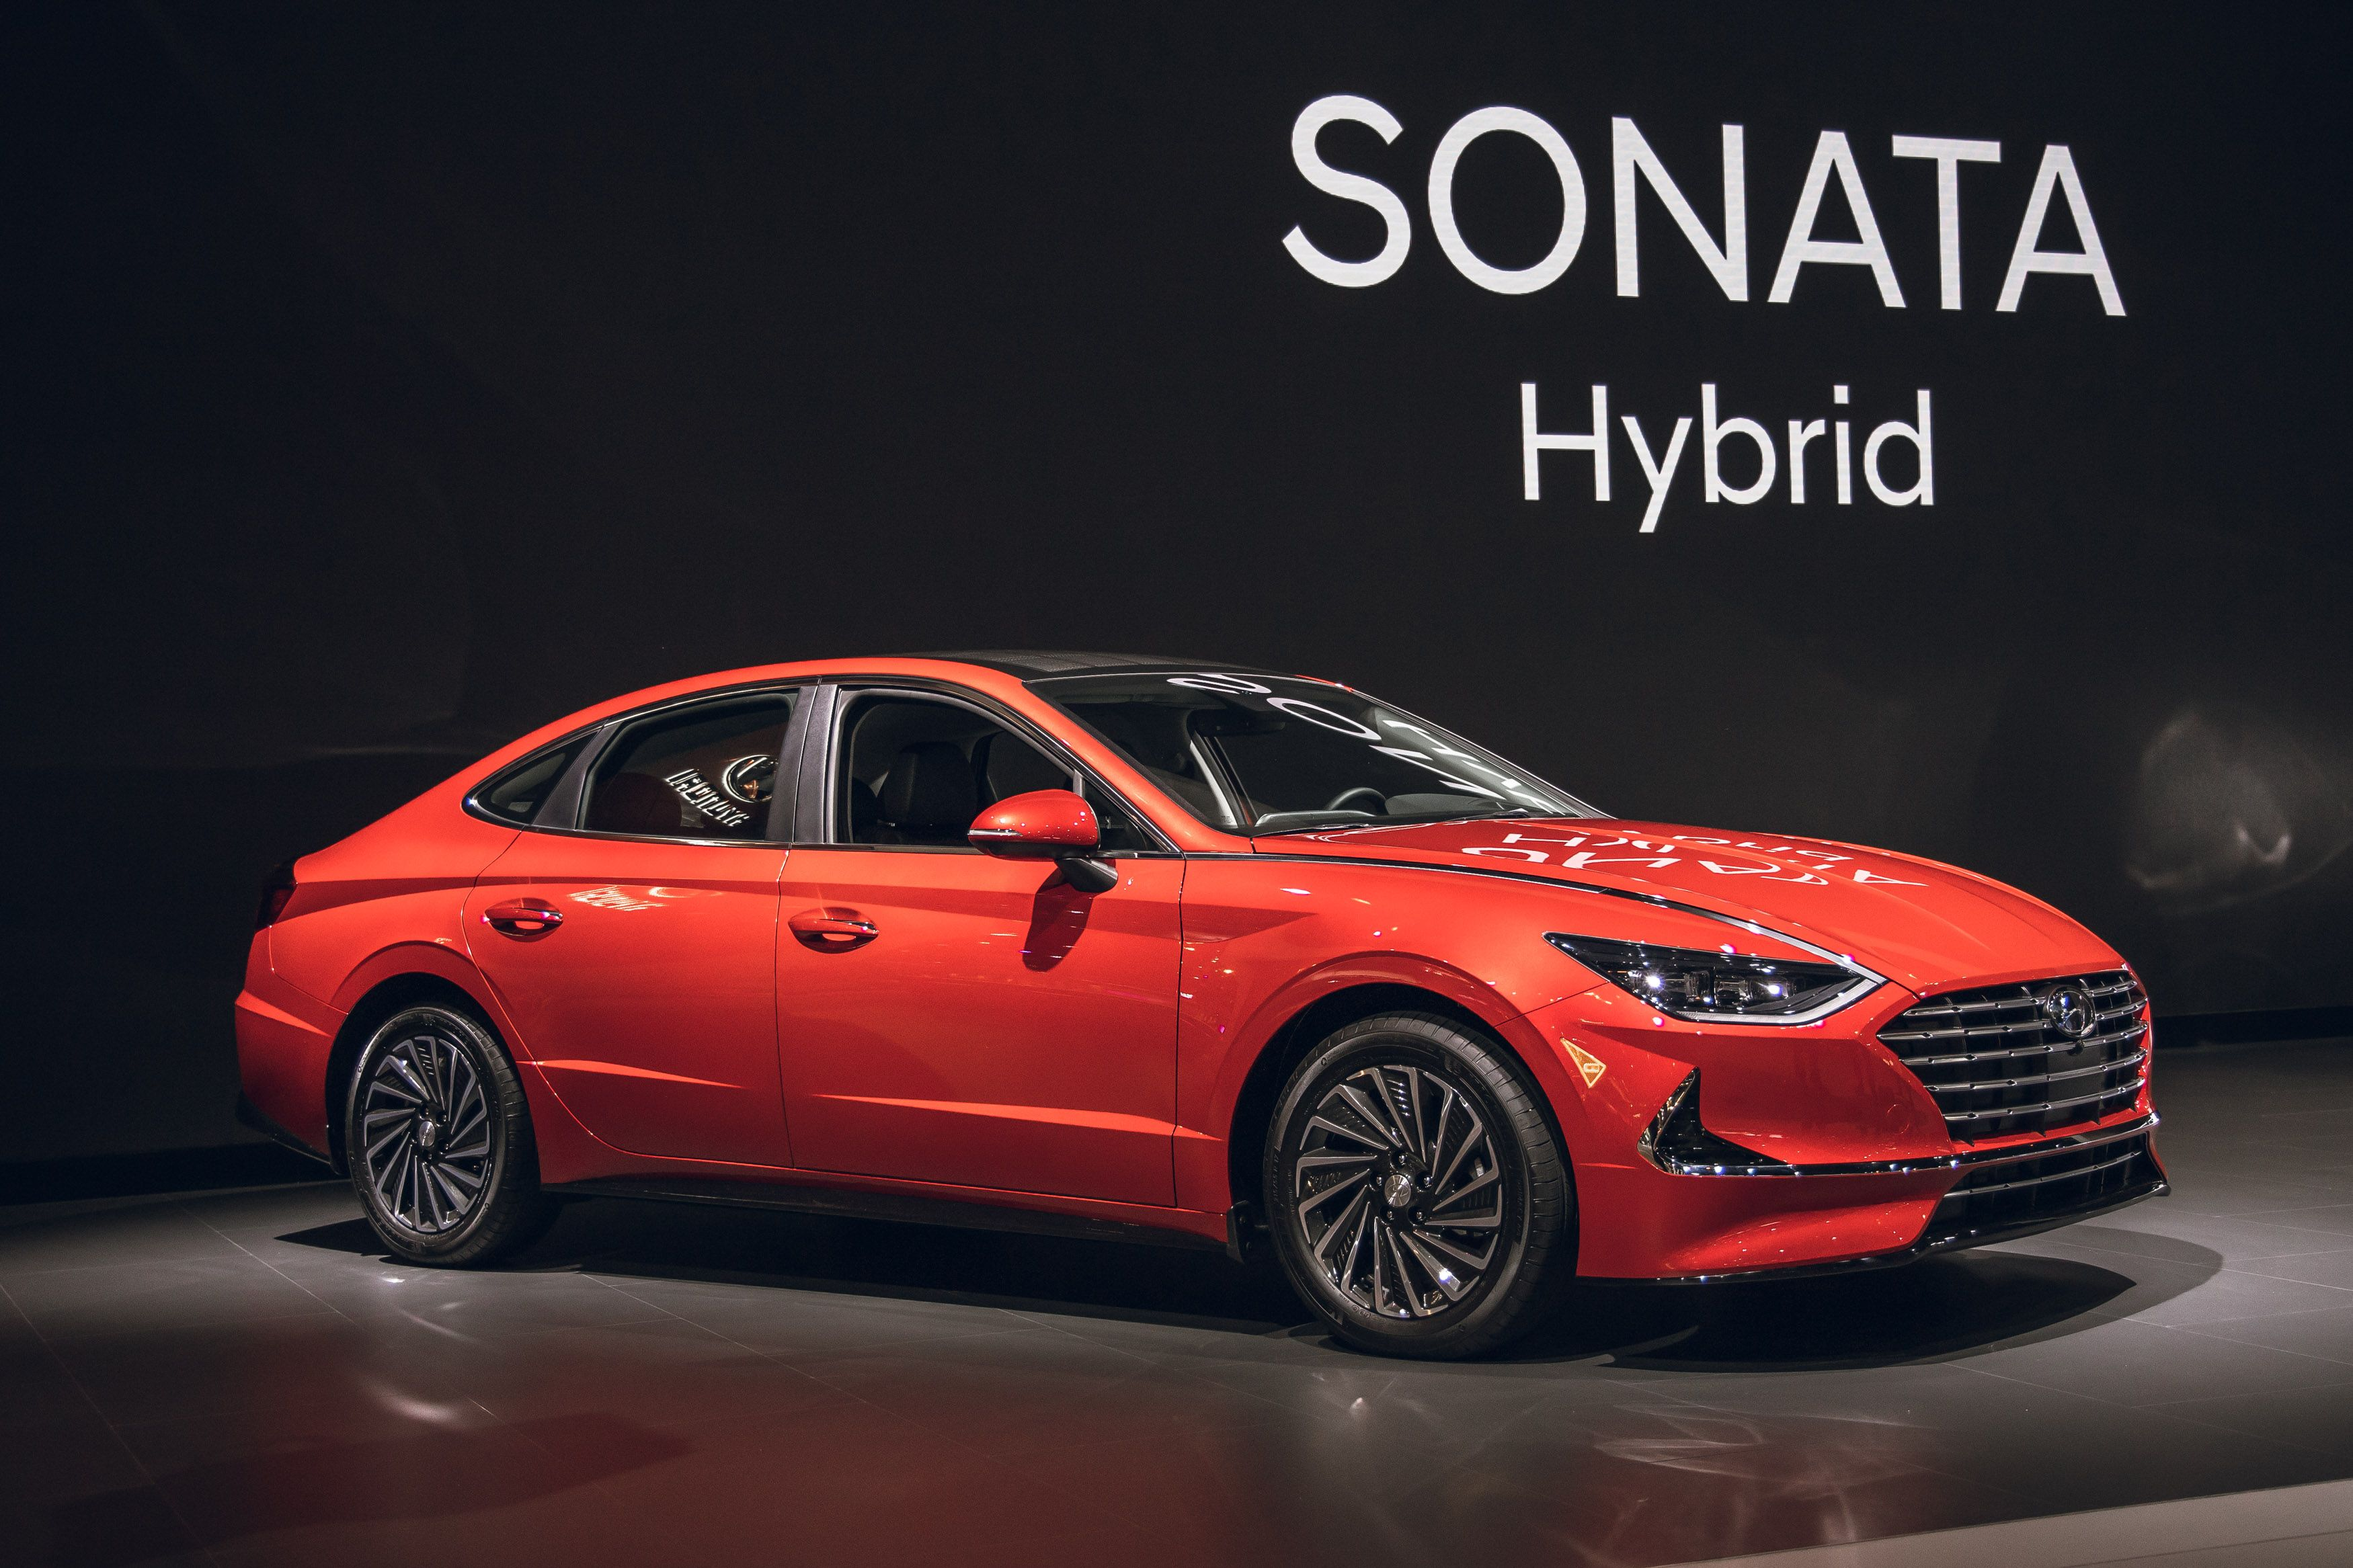 New 3 Hyundai Sonata Hybrid Has a Solar Roof, Up to 3 MPG